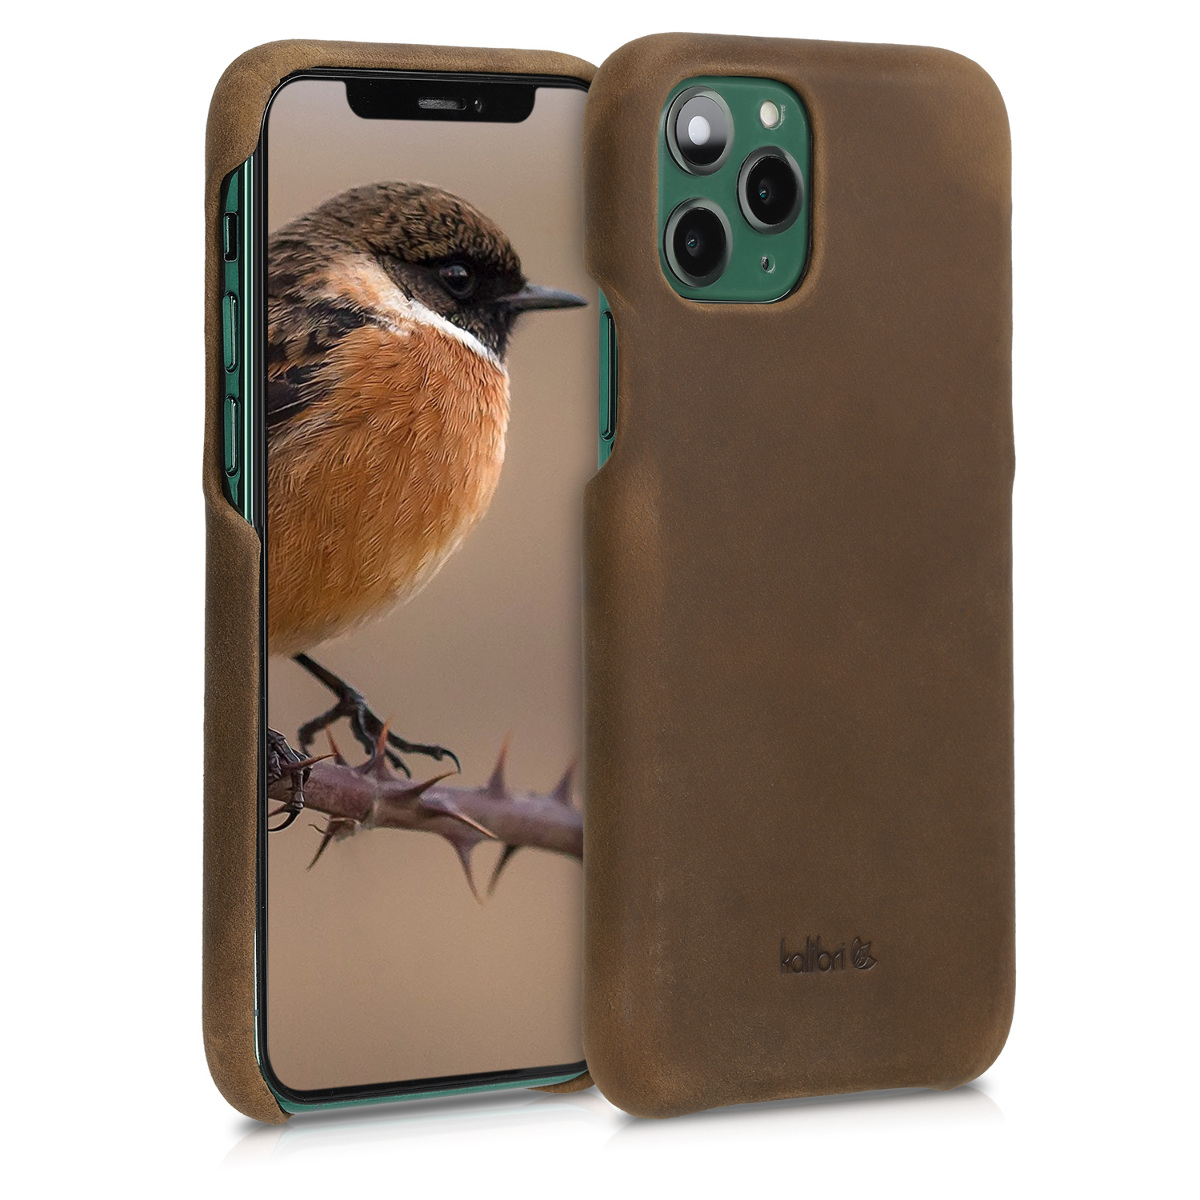 Kalibri Σκληρή Δερμάτινη Θήκη Apple iPhone 11 Pro - Smooth Genuine Leather Hard Case - Brown (49736.05)